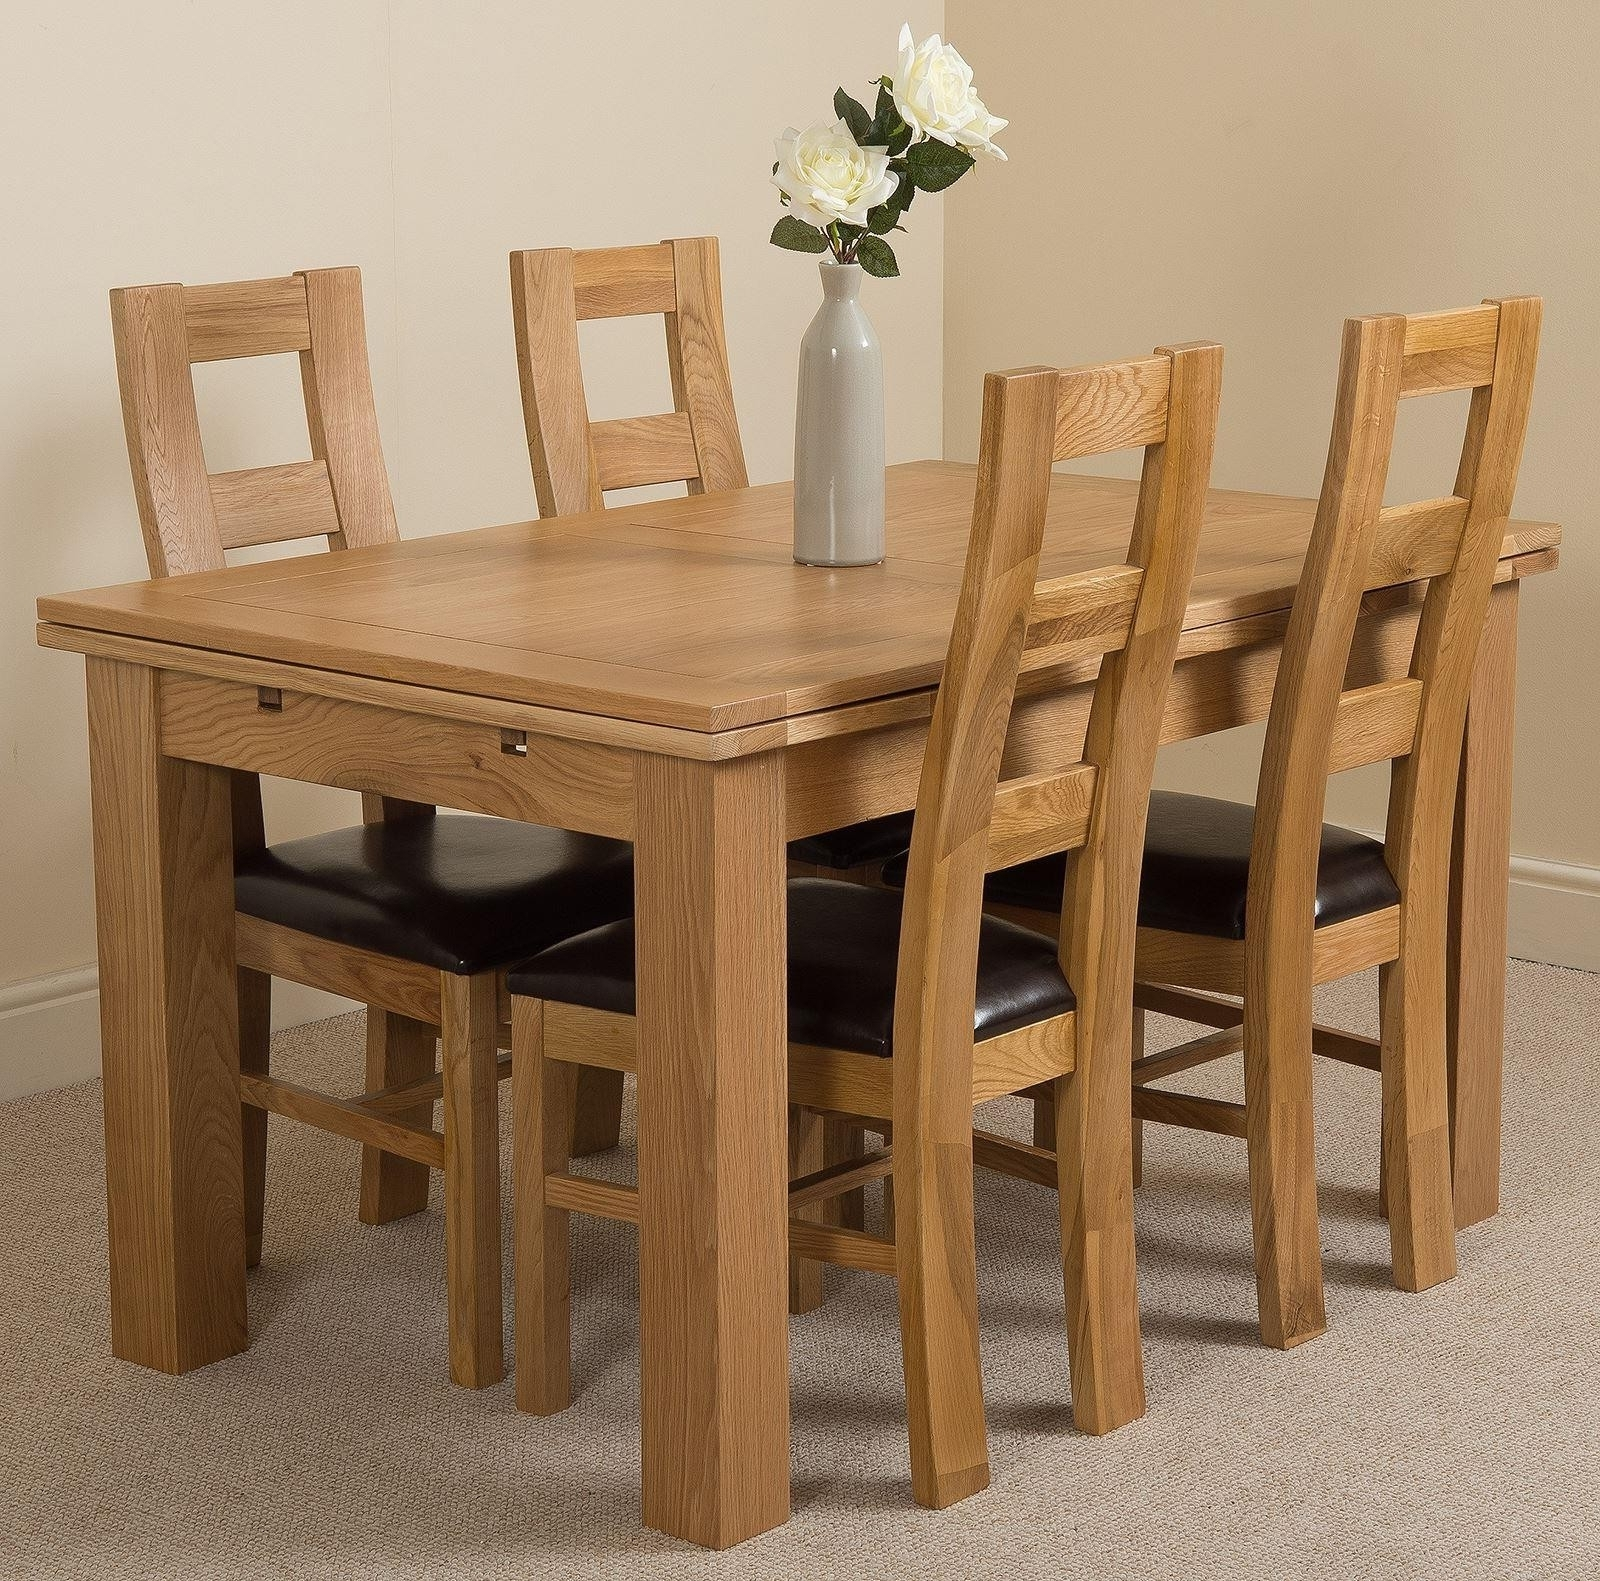 Oak Dining Tables And 4 Chairs Intended For Well Liked Richmond Medium Dining Set 4 Yale Chairs (View 12 of 25)